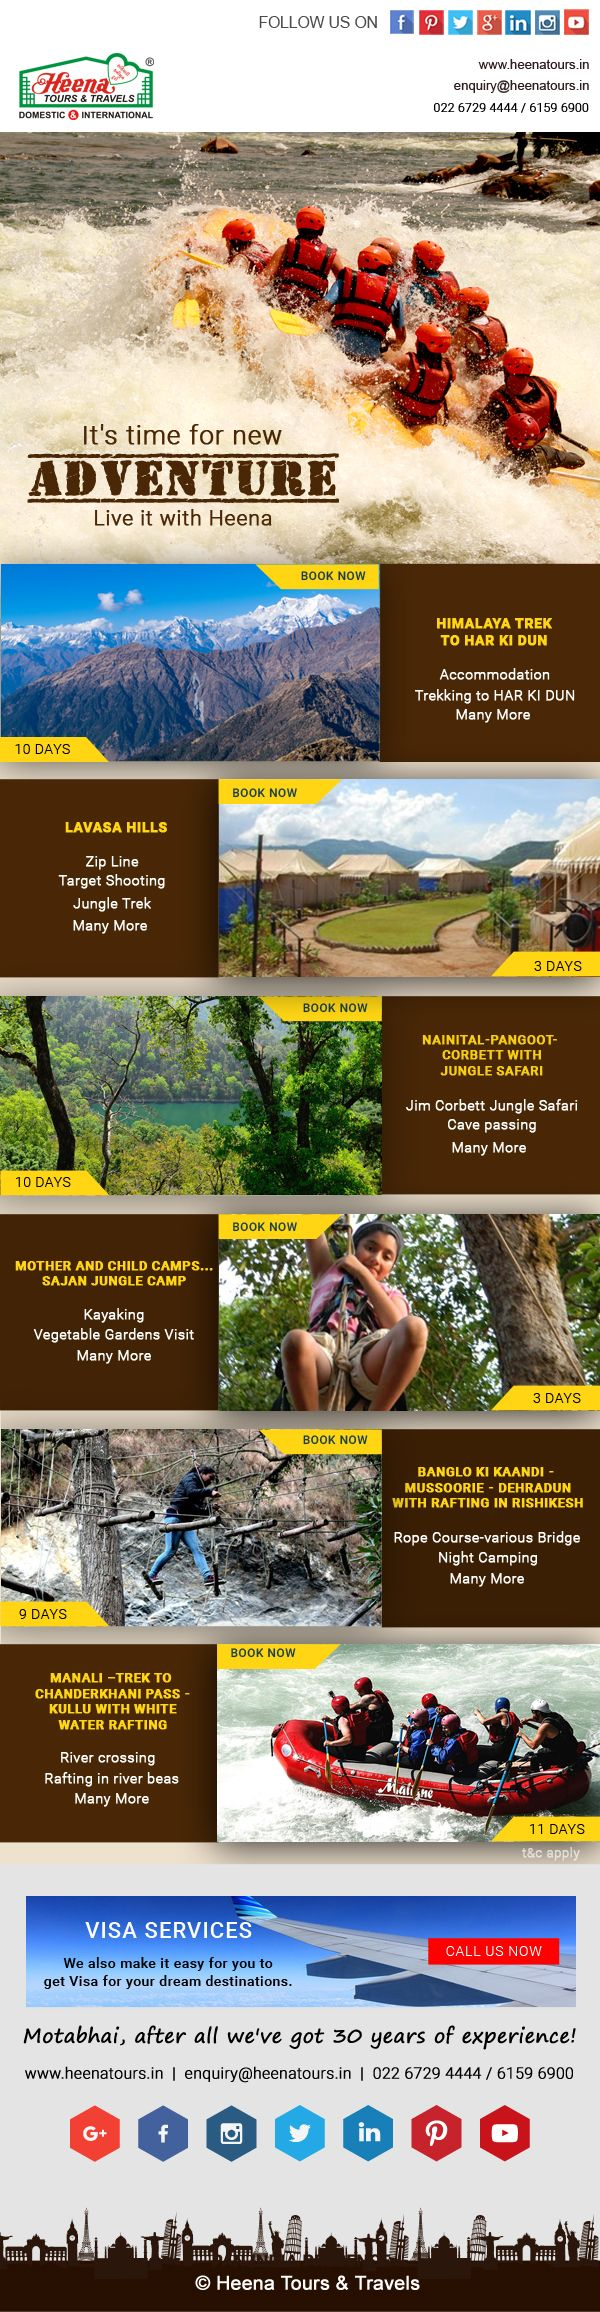 Let's take a break from the busy school schedule and plan a vacation with combination of entertainment, education and adventure. Heena Tours launches varied adventure tour packages with full of adventurous activities like River Crossing, White water rafting, Mountaineering, Rappelling, Rock Climbing, Zorbing, Burma Bridge, Treasure Hunt, Jungle Trek, Night Trek, Archery and many more. Book special Adventure Packages with us and experience the best adventure travel.